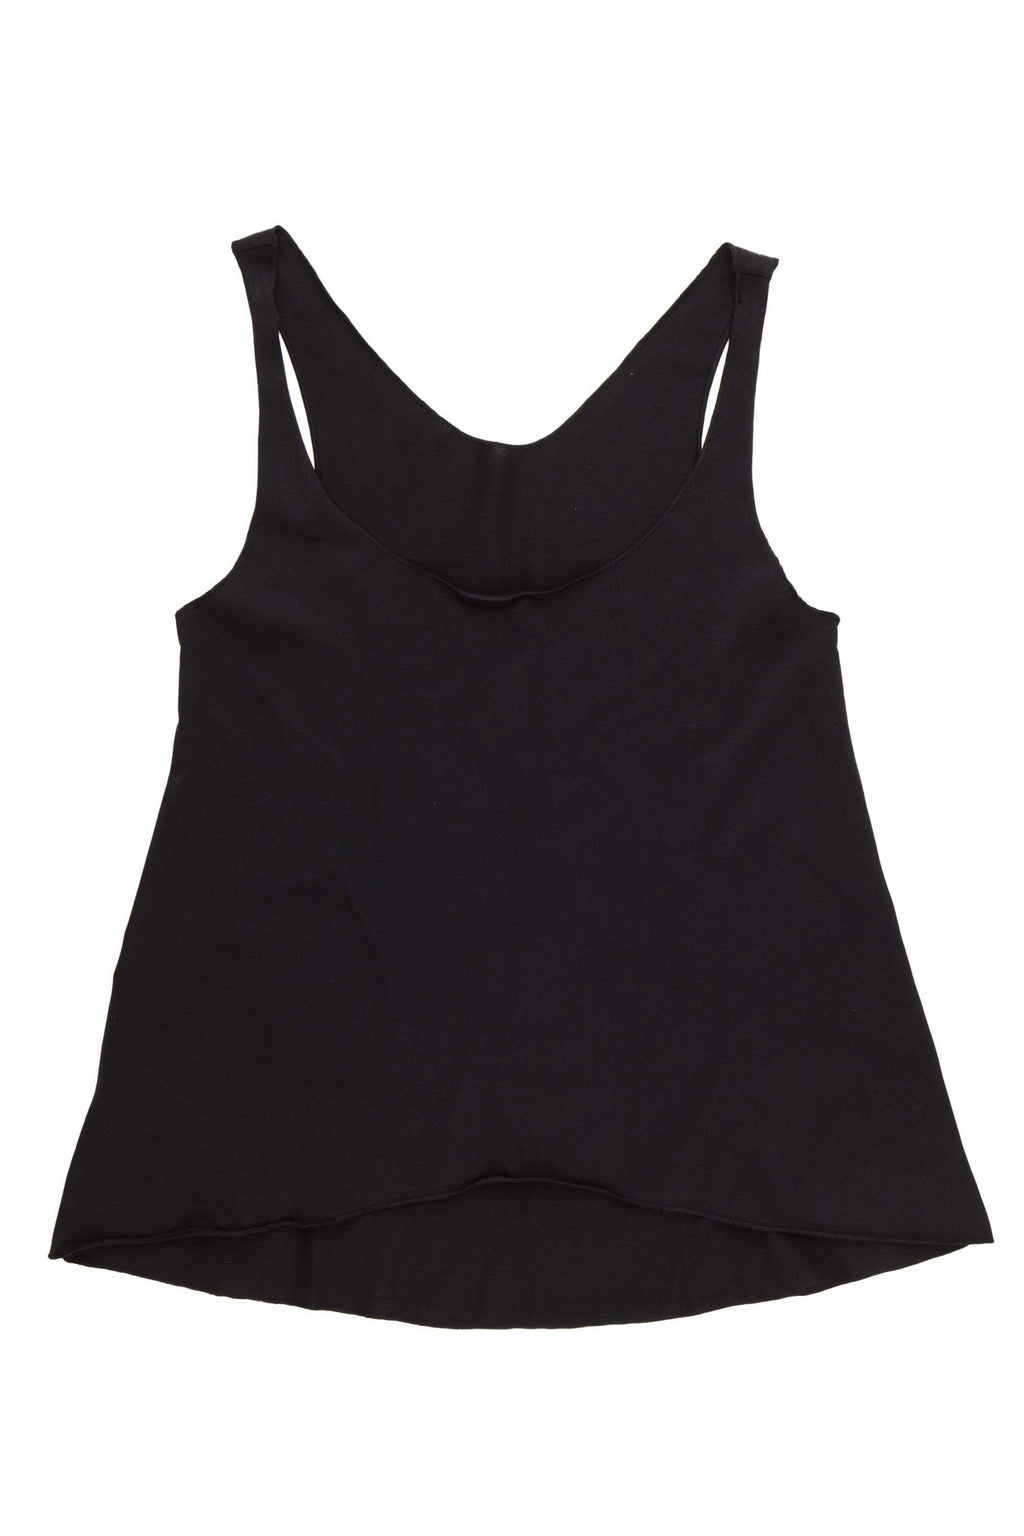 Women's Cropped Tank - Black